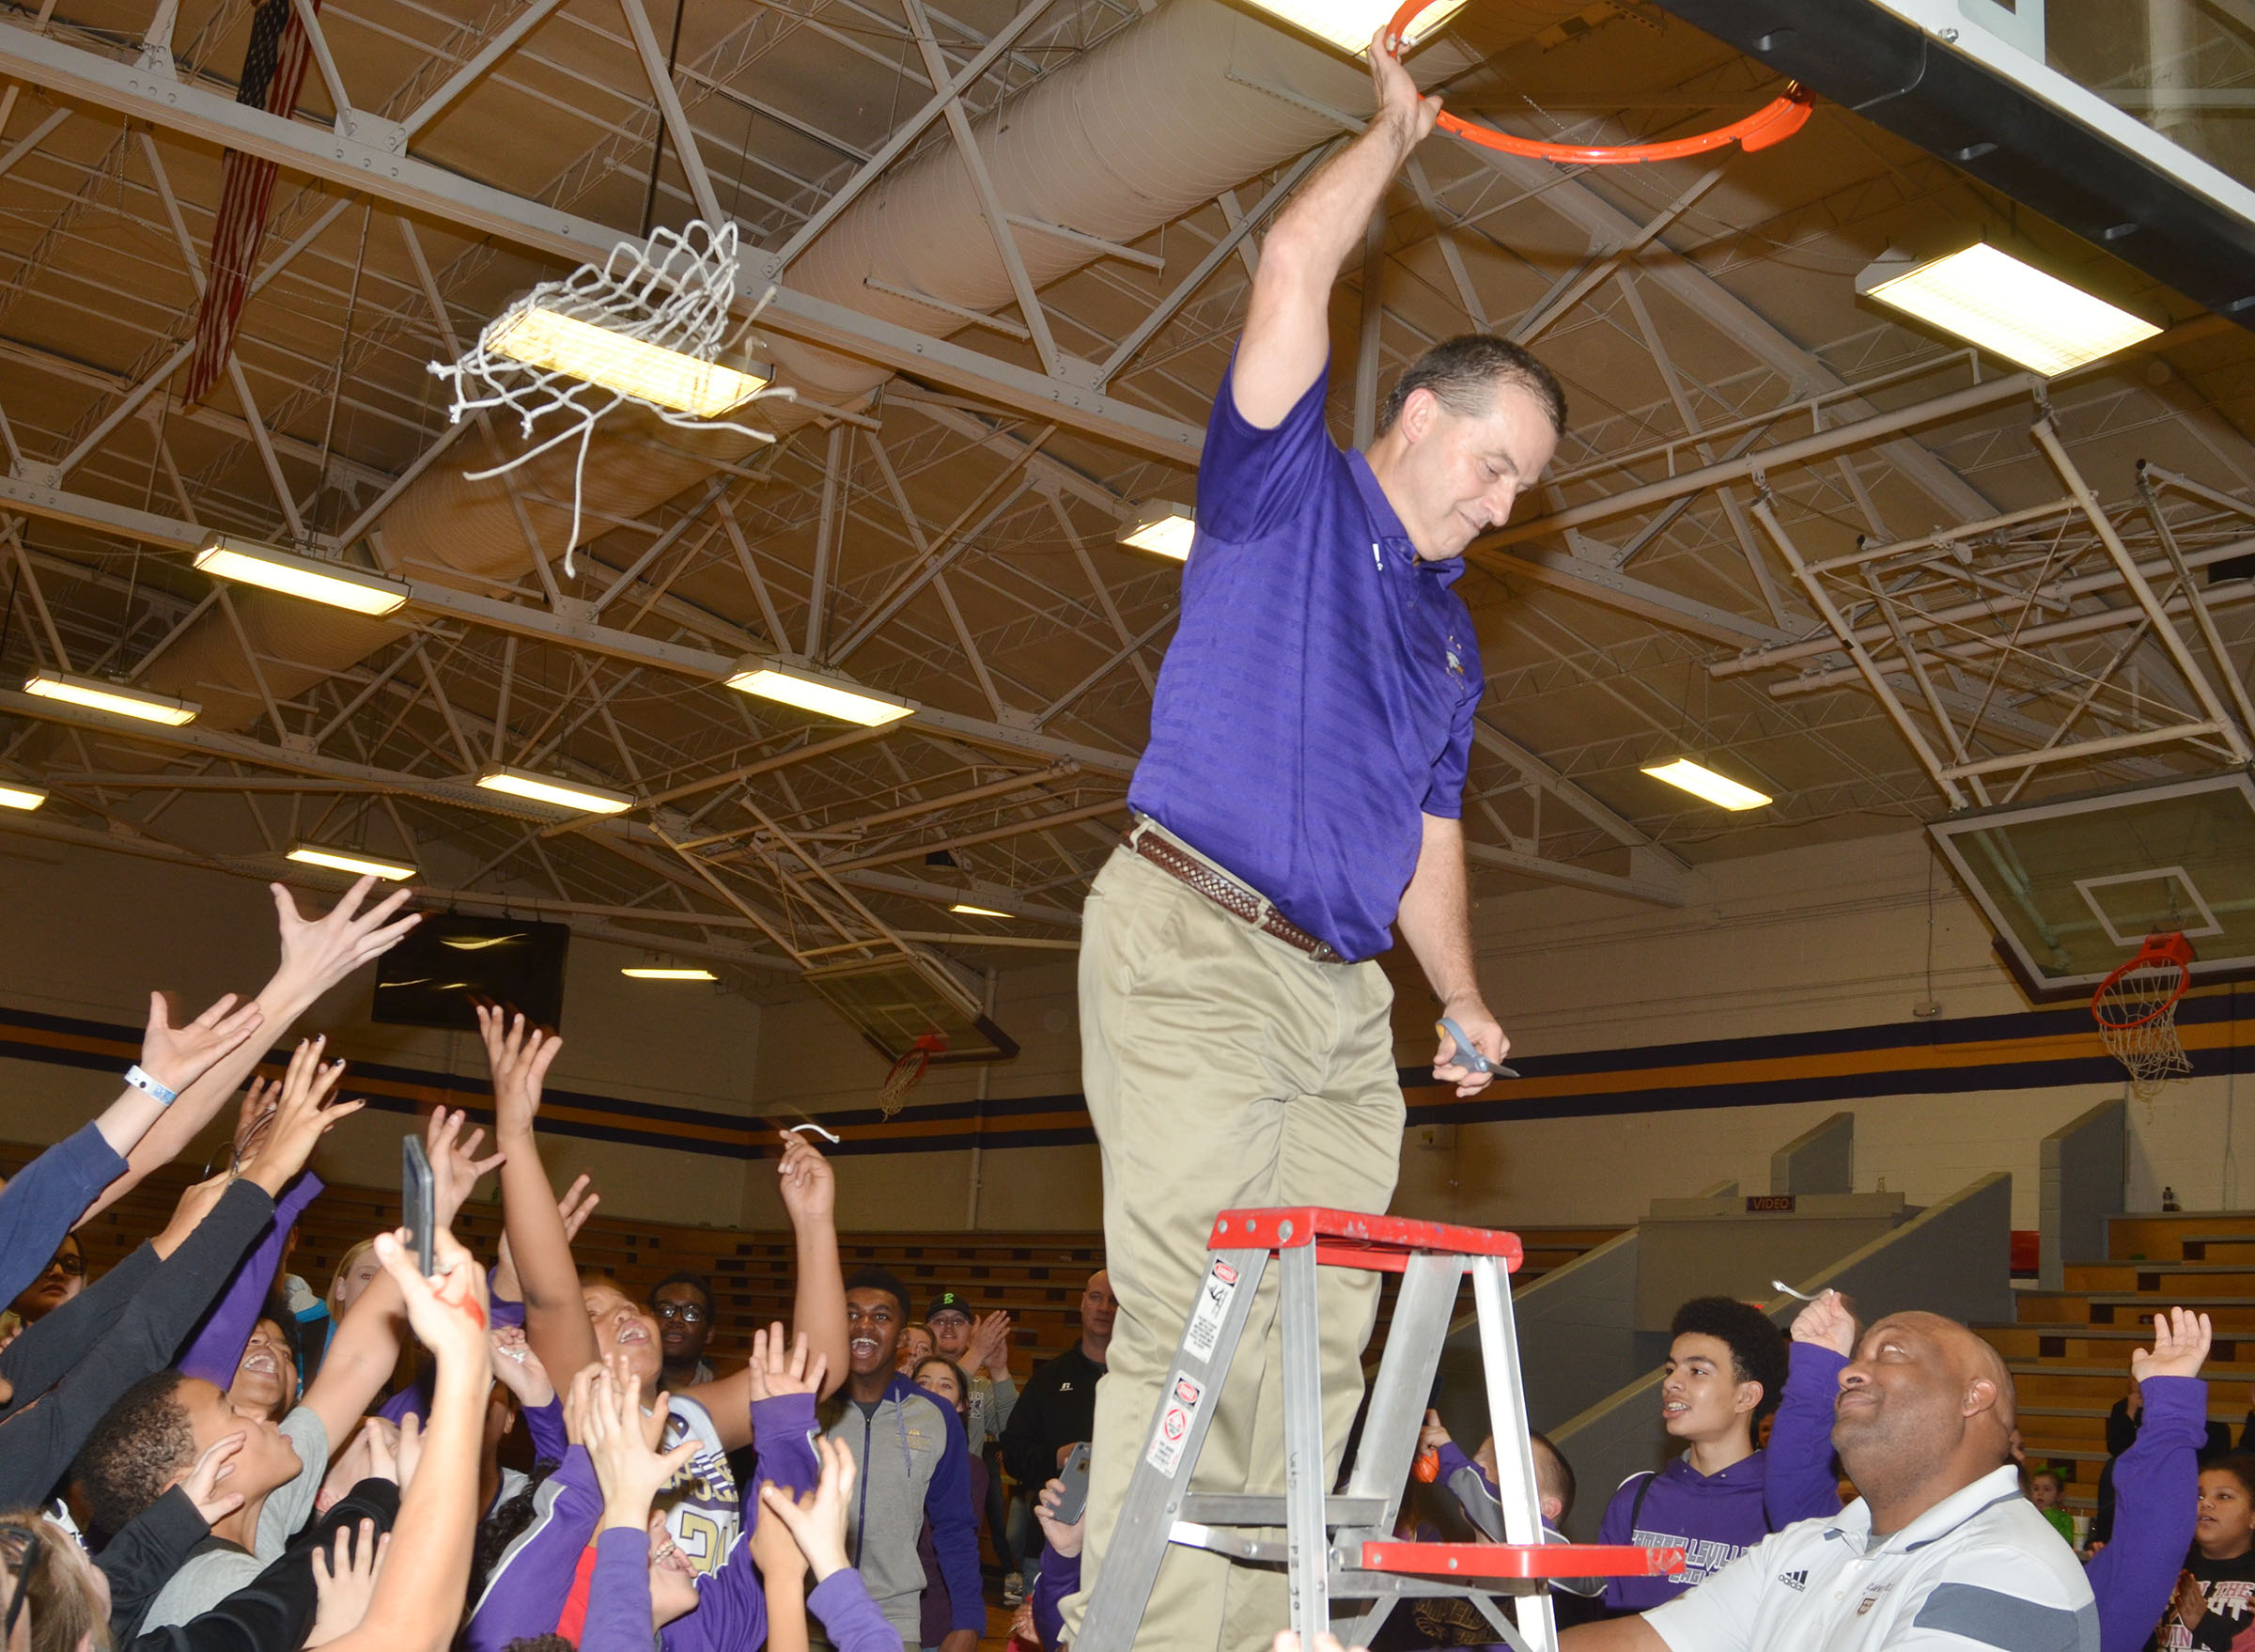 CMS boys' basketball coach Lynn Kearney throws the net after cutting it down.